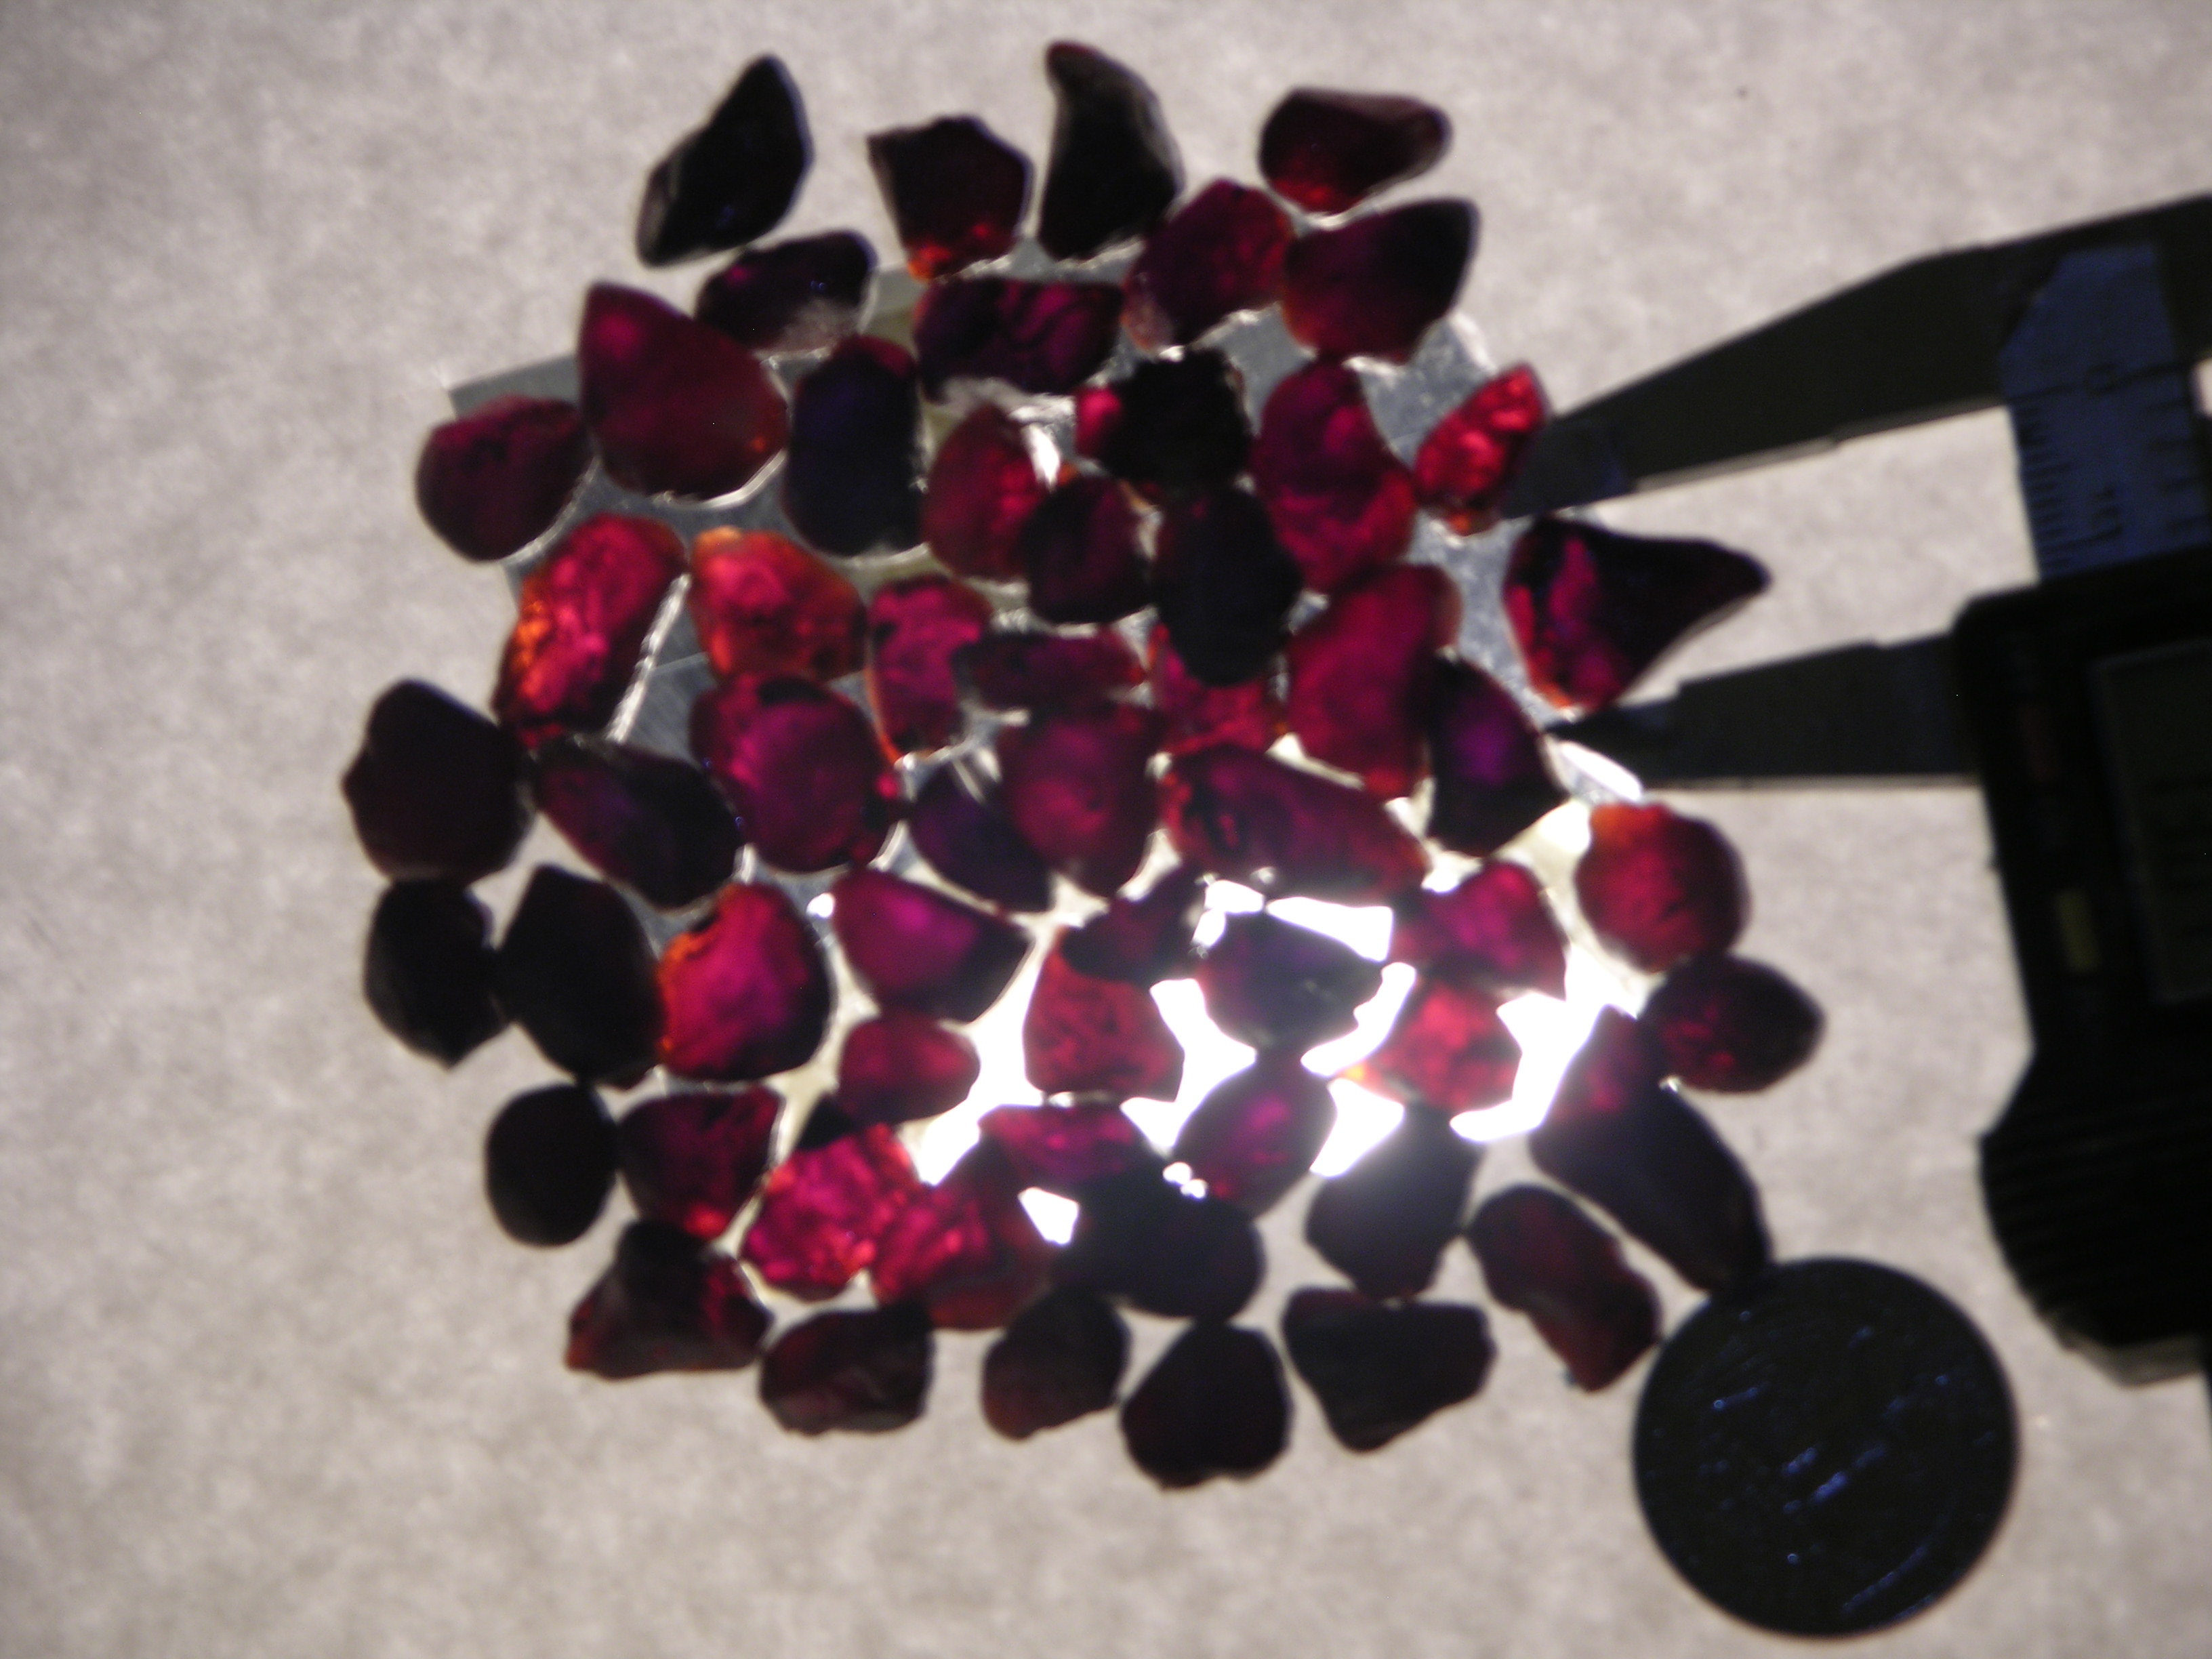 Rough Garnet Almandine from Africa